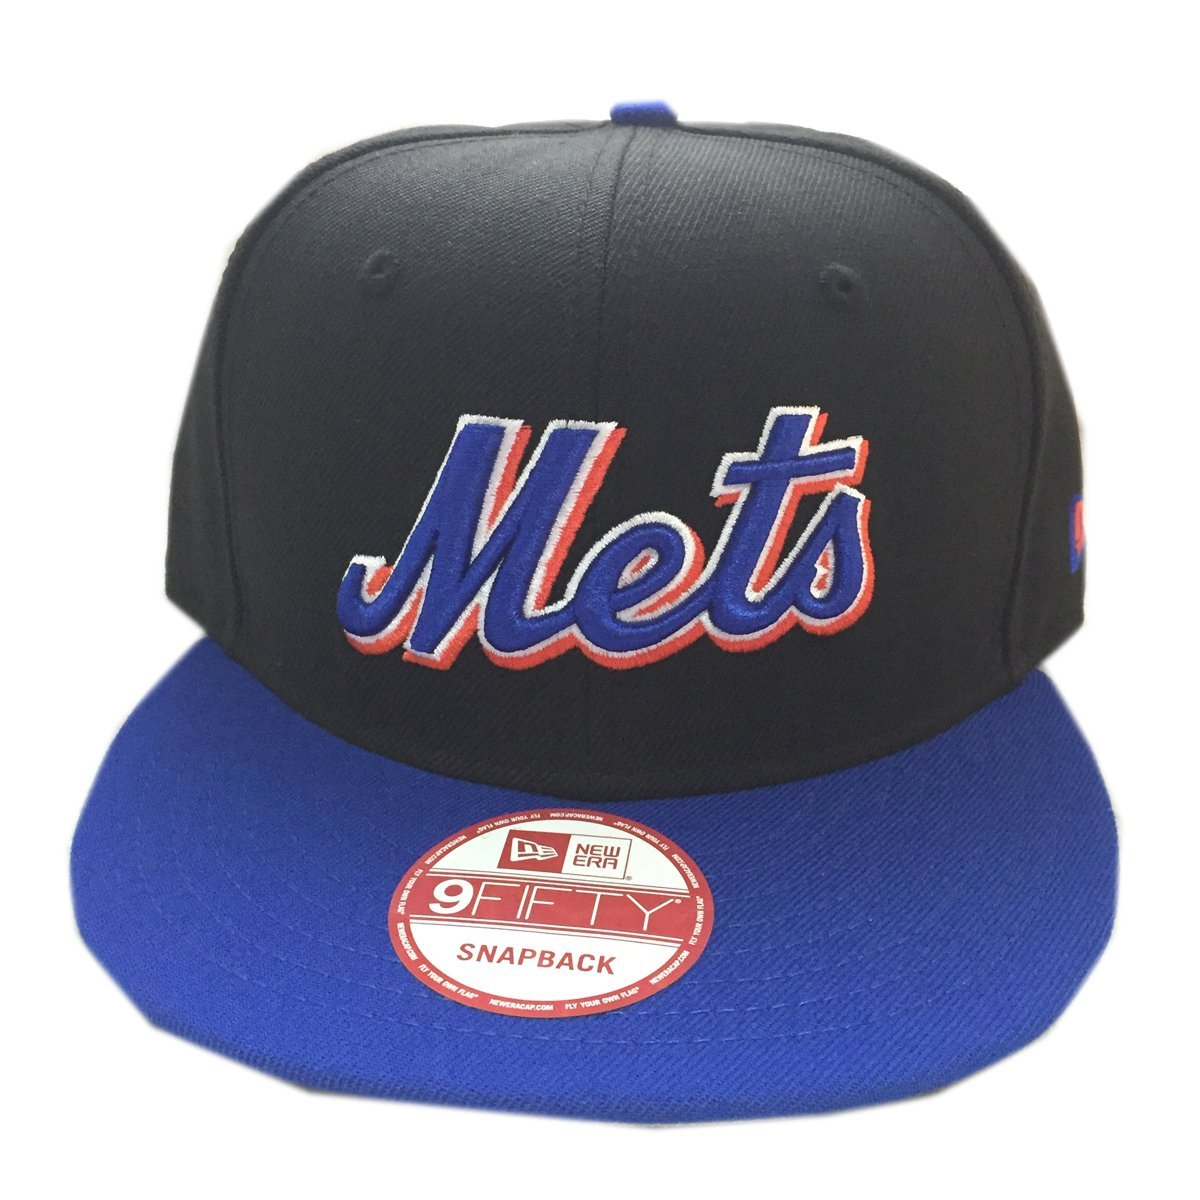 New Era New York Mets MLB Basic Snapback Original Team Color Adjustable 950 Cap Royal Blue